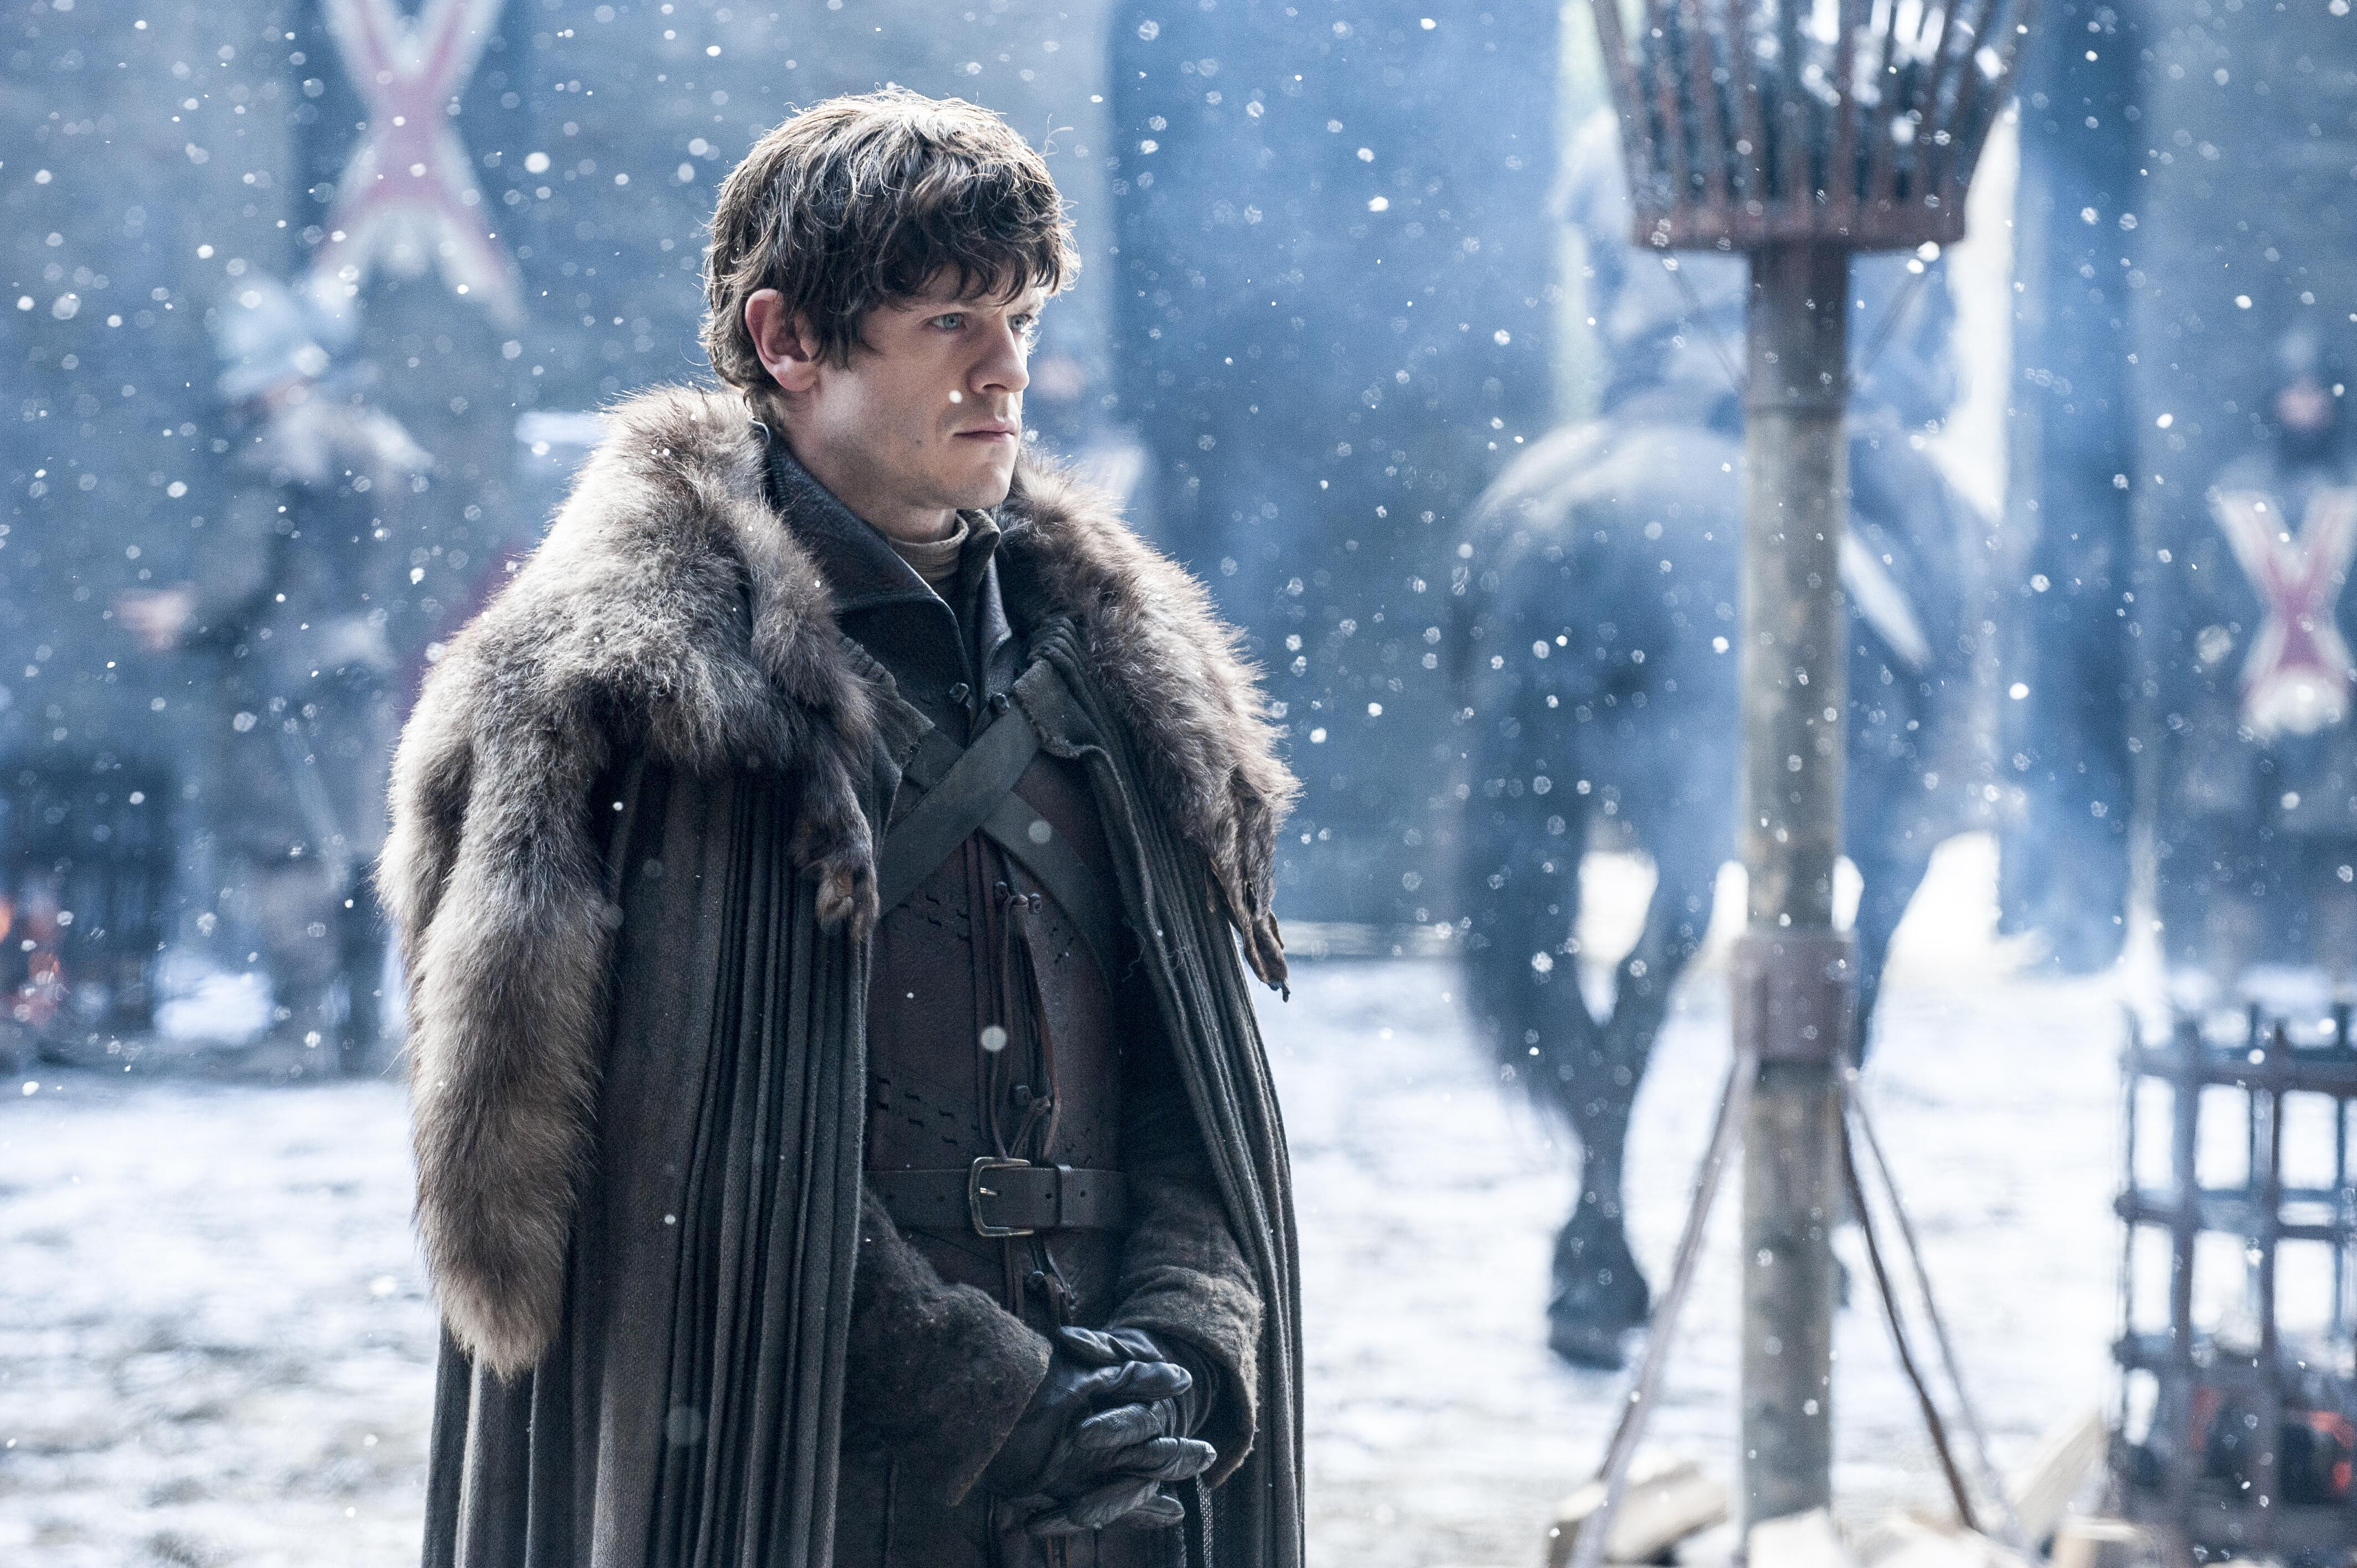 Bild zu Ramsay Bolton, Game of Thrones